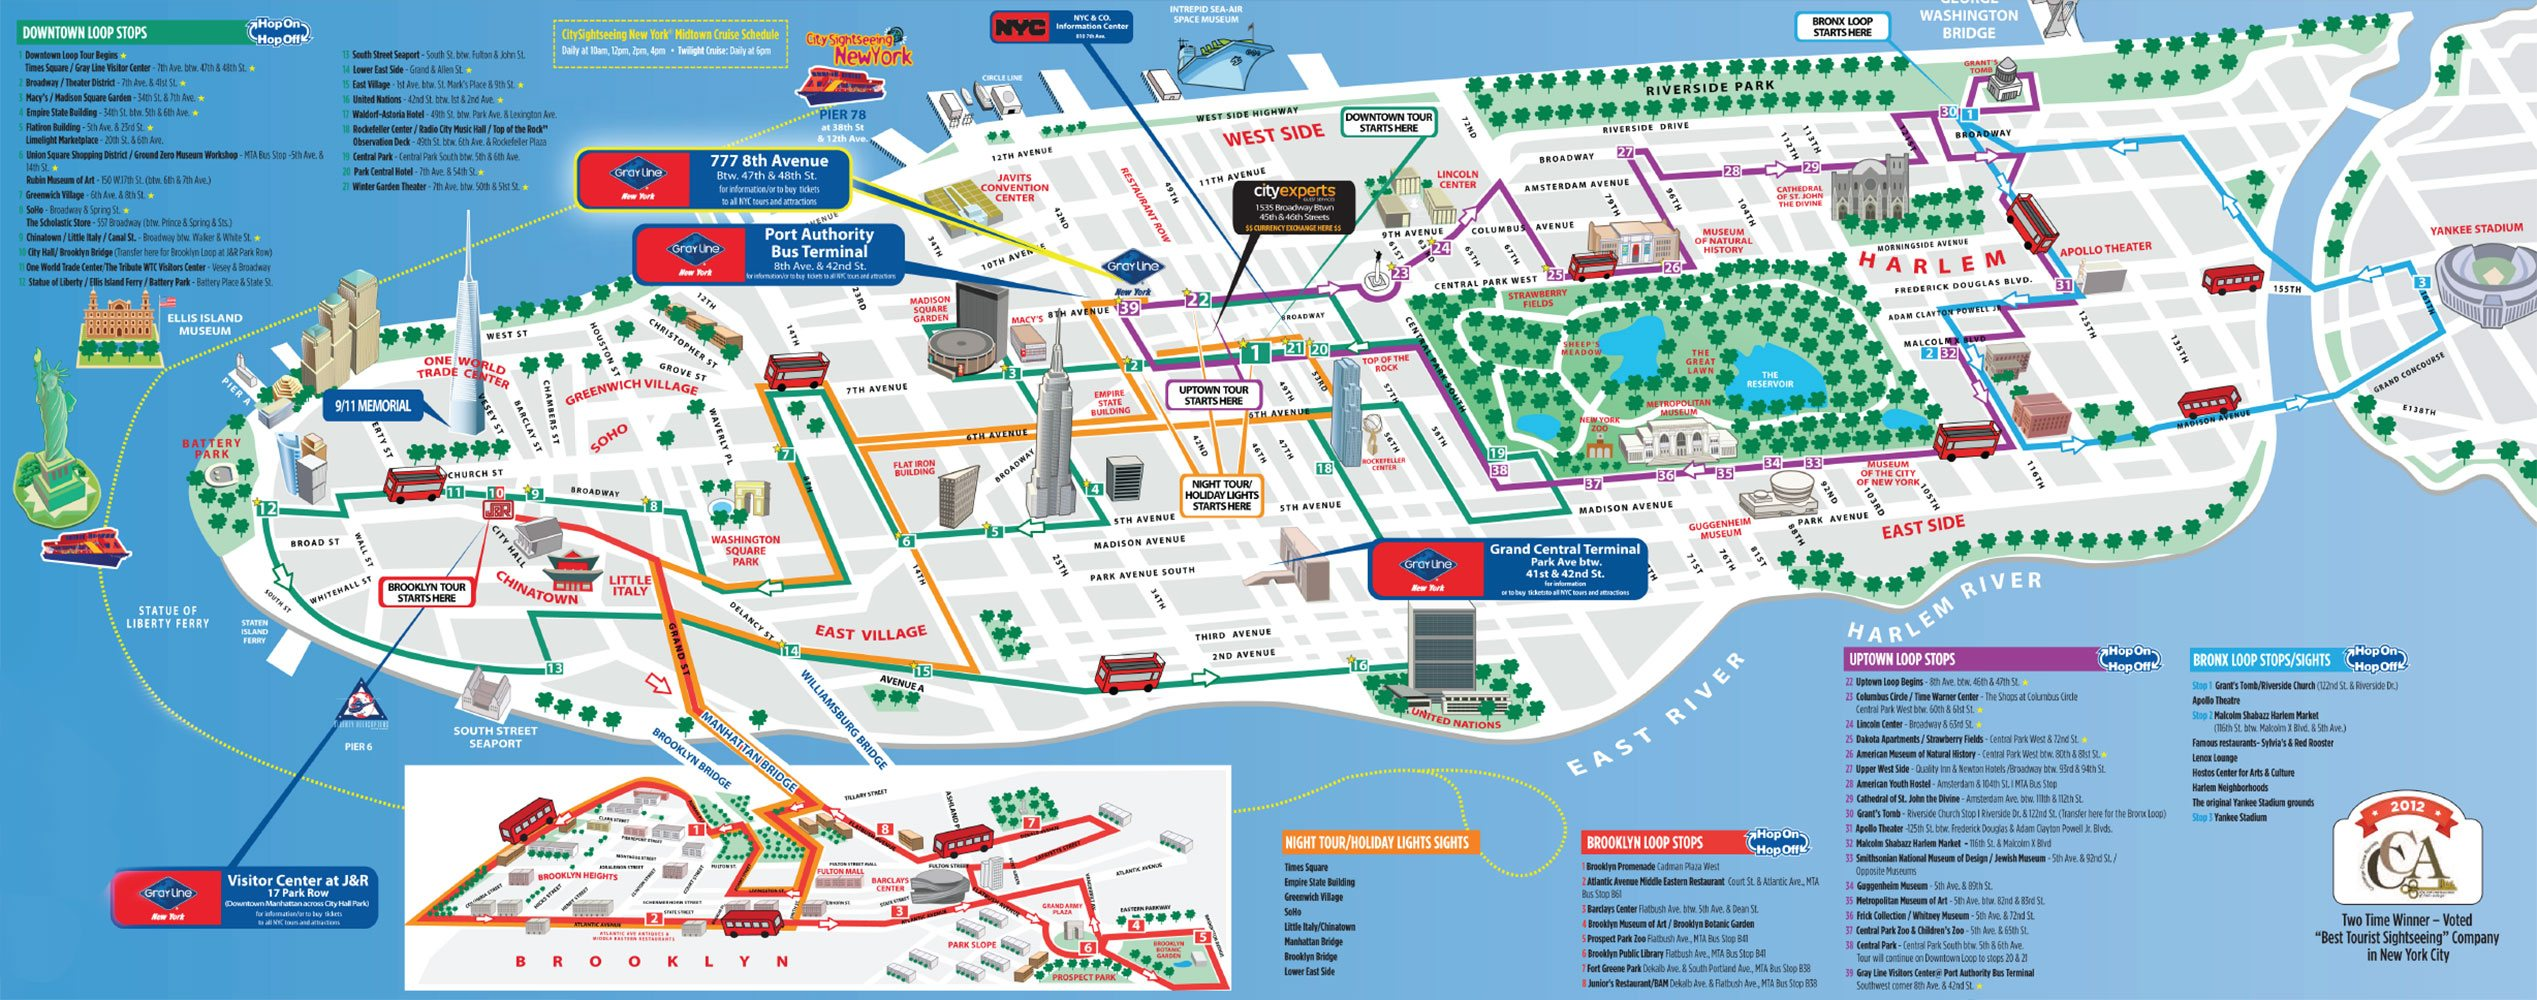 Map Of Attractions In New York City – Tourist Attractions Map In New York City